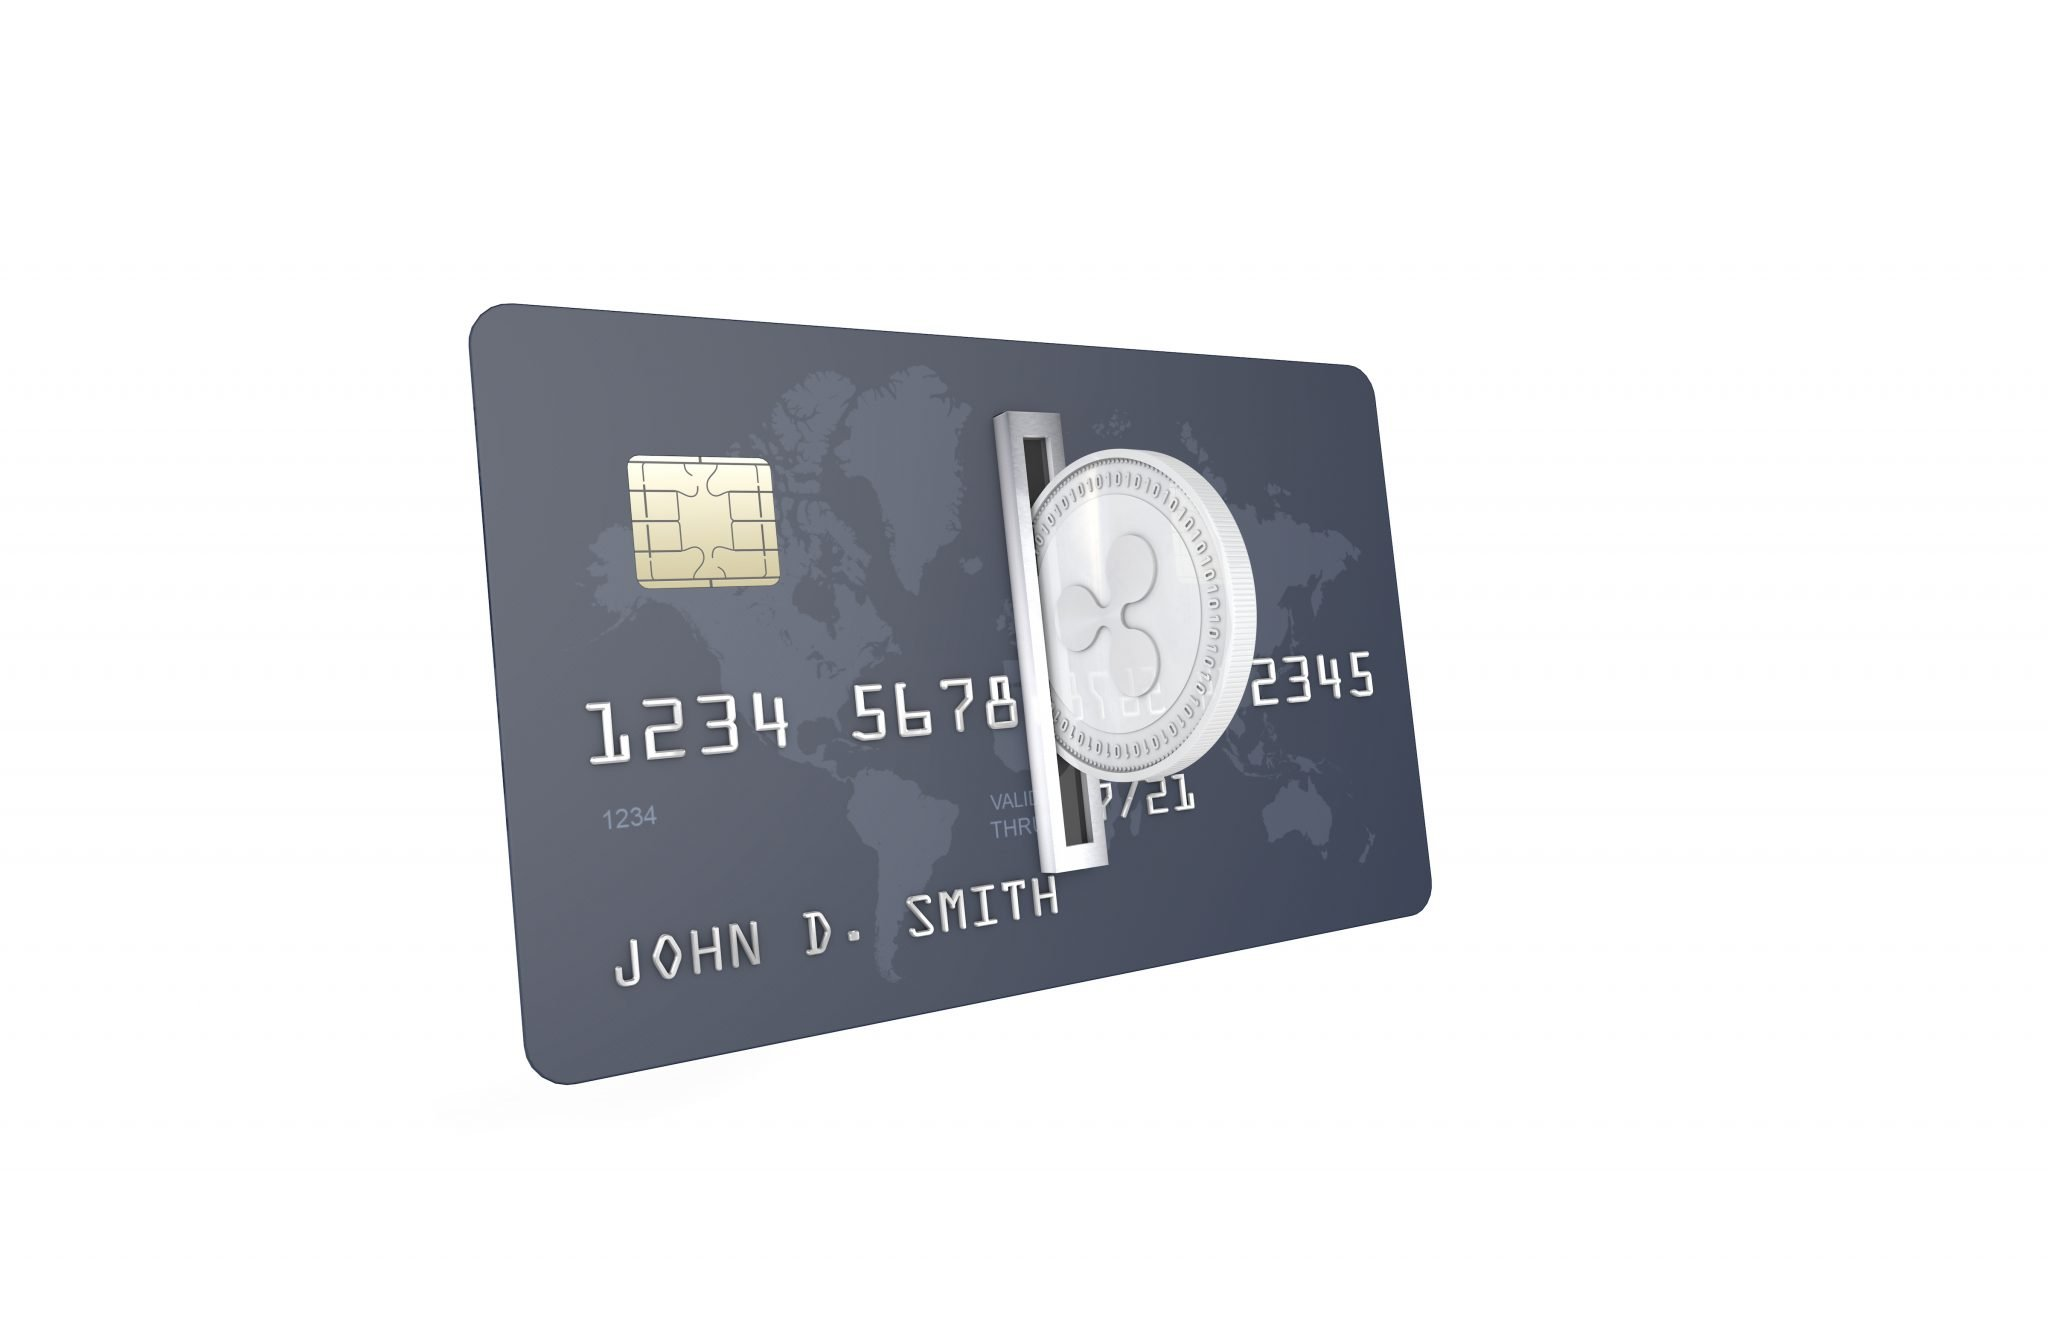 Silver Ripple Coin (XRP) being inserted into coin acceptor on a credit card. Ripple Upload to Bank Account Concept.